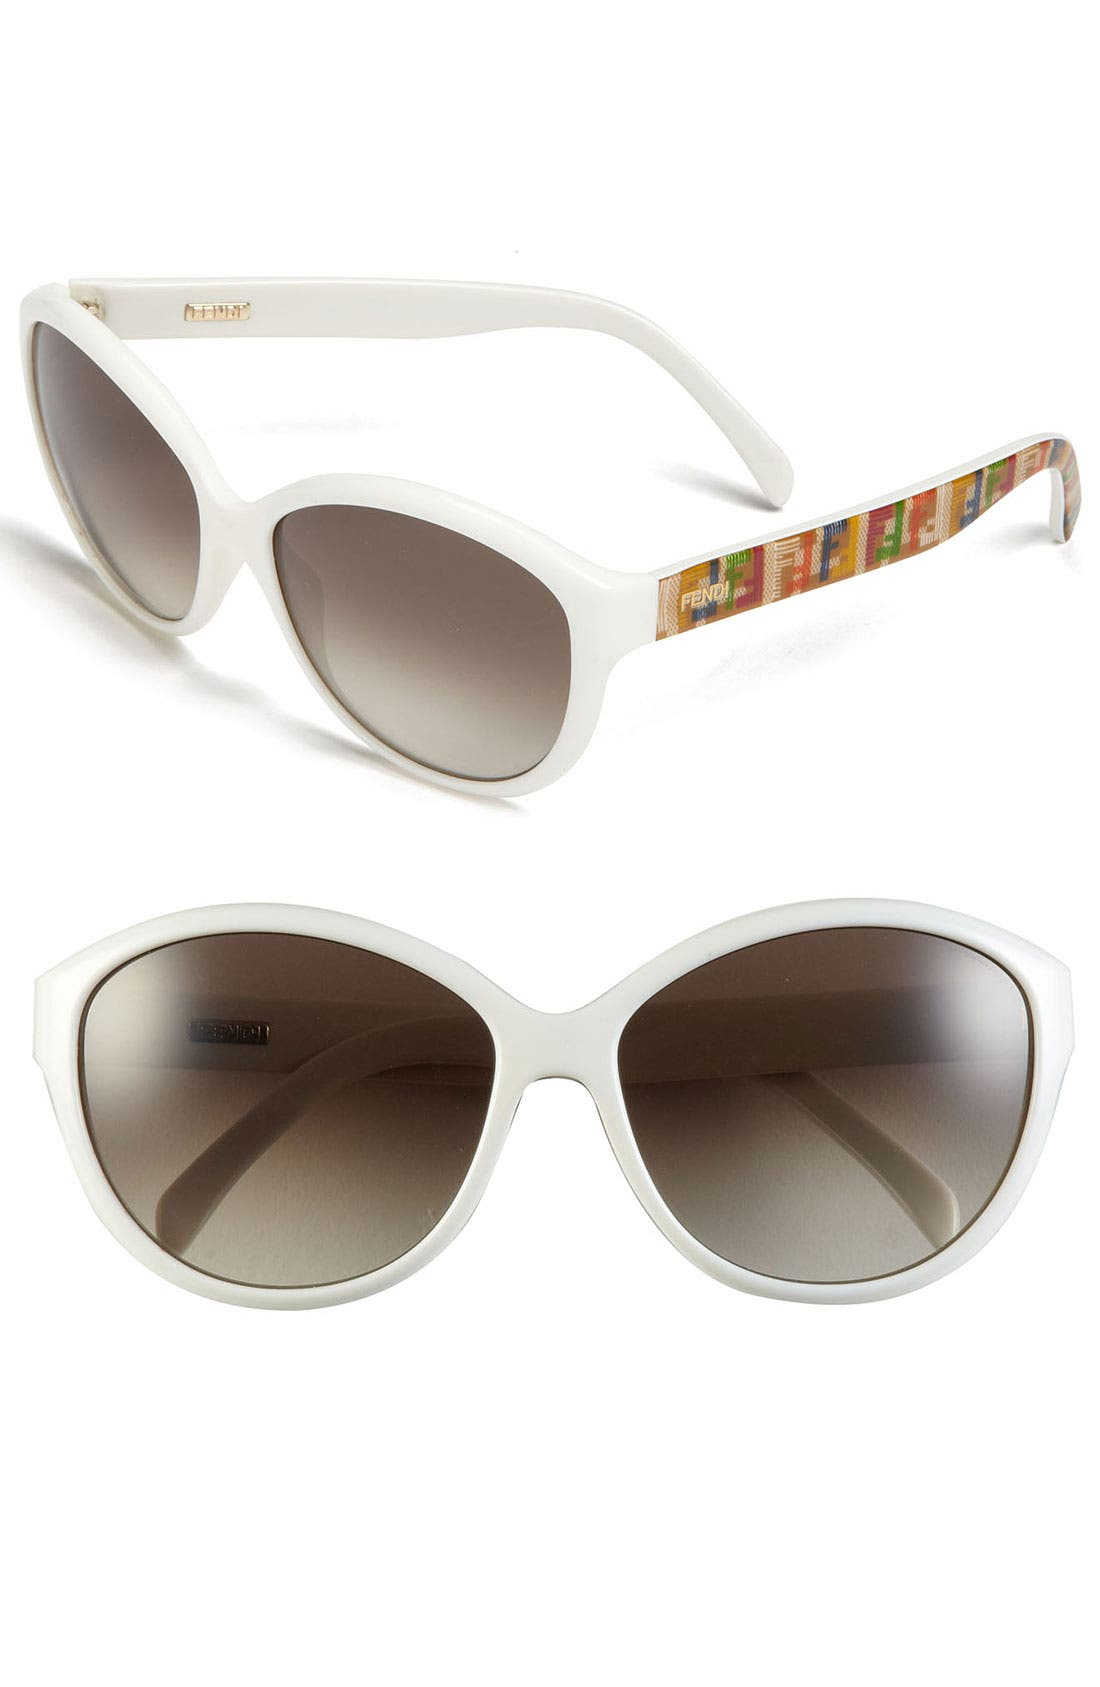 Main Image - Fendi 'Technicolor' 58mm Sunglasses